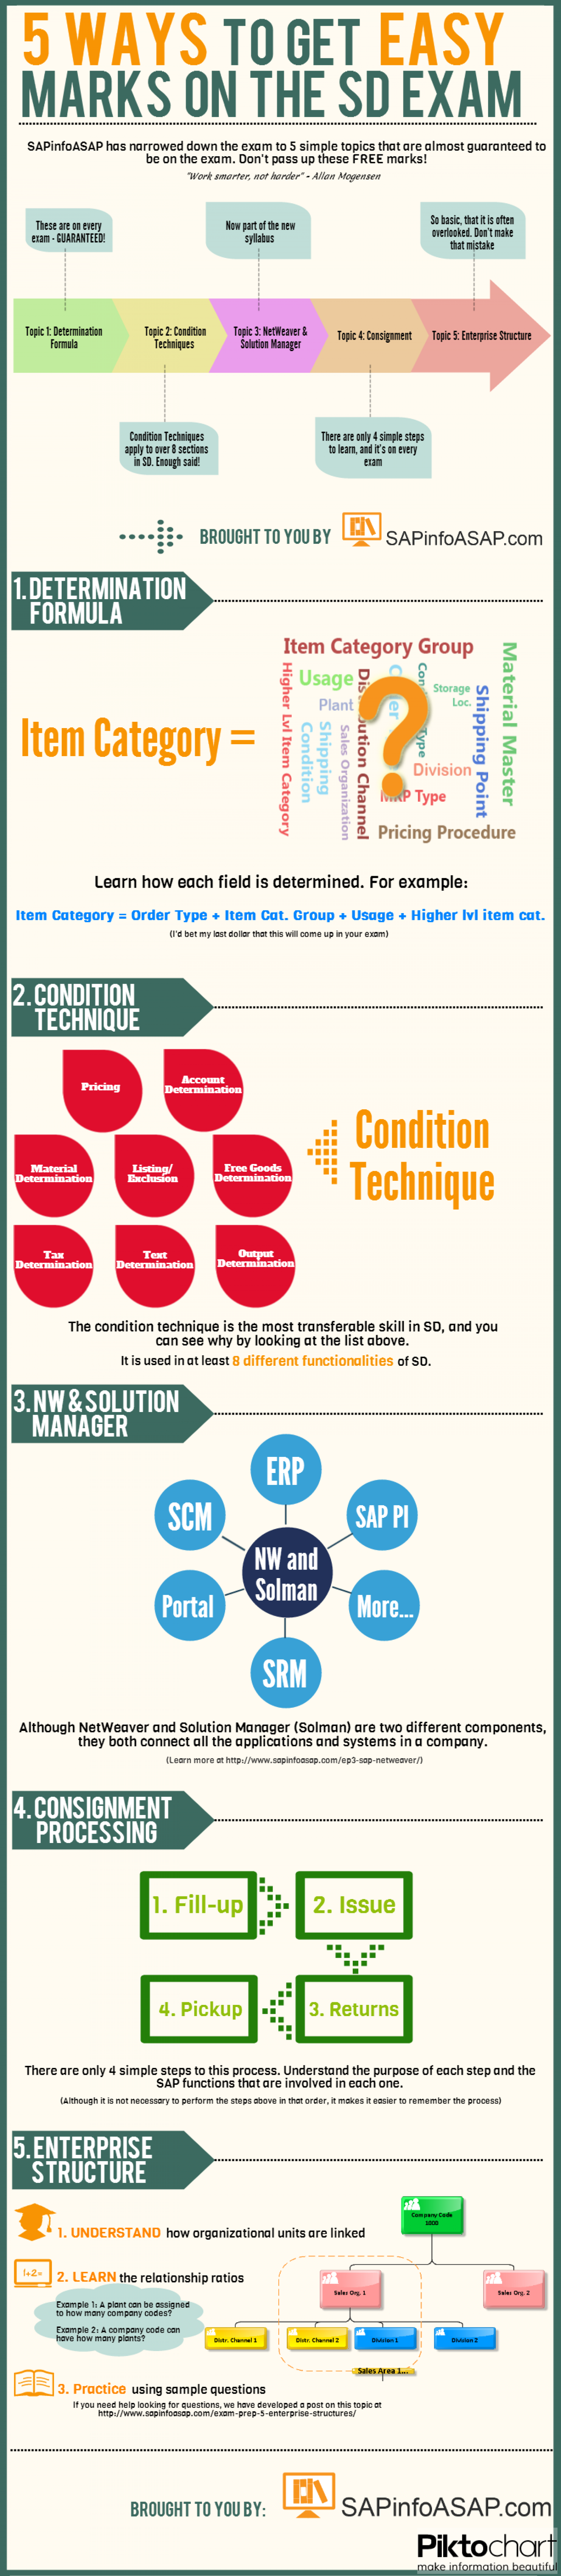 5 easy ways to get easy marks on the SAP SD exam Infographic